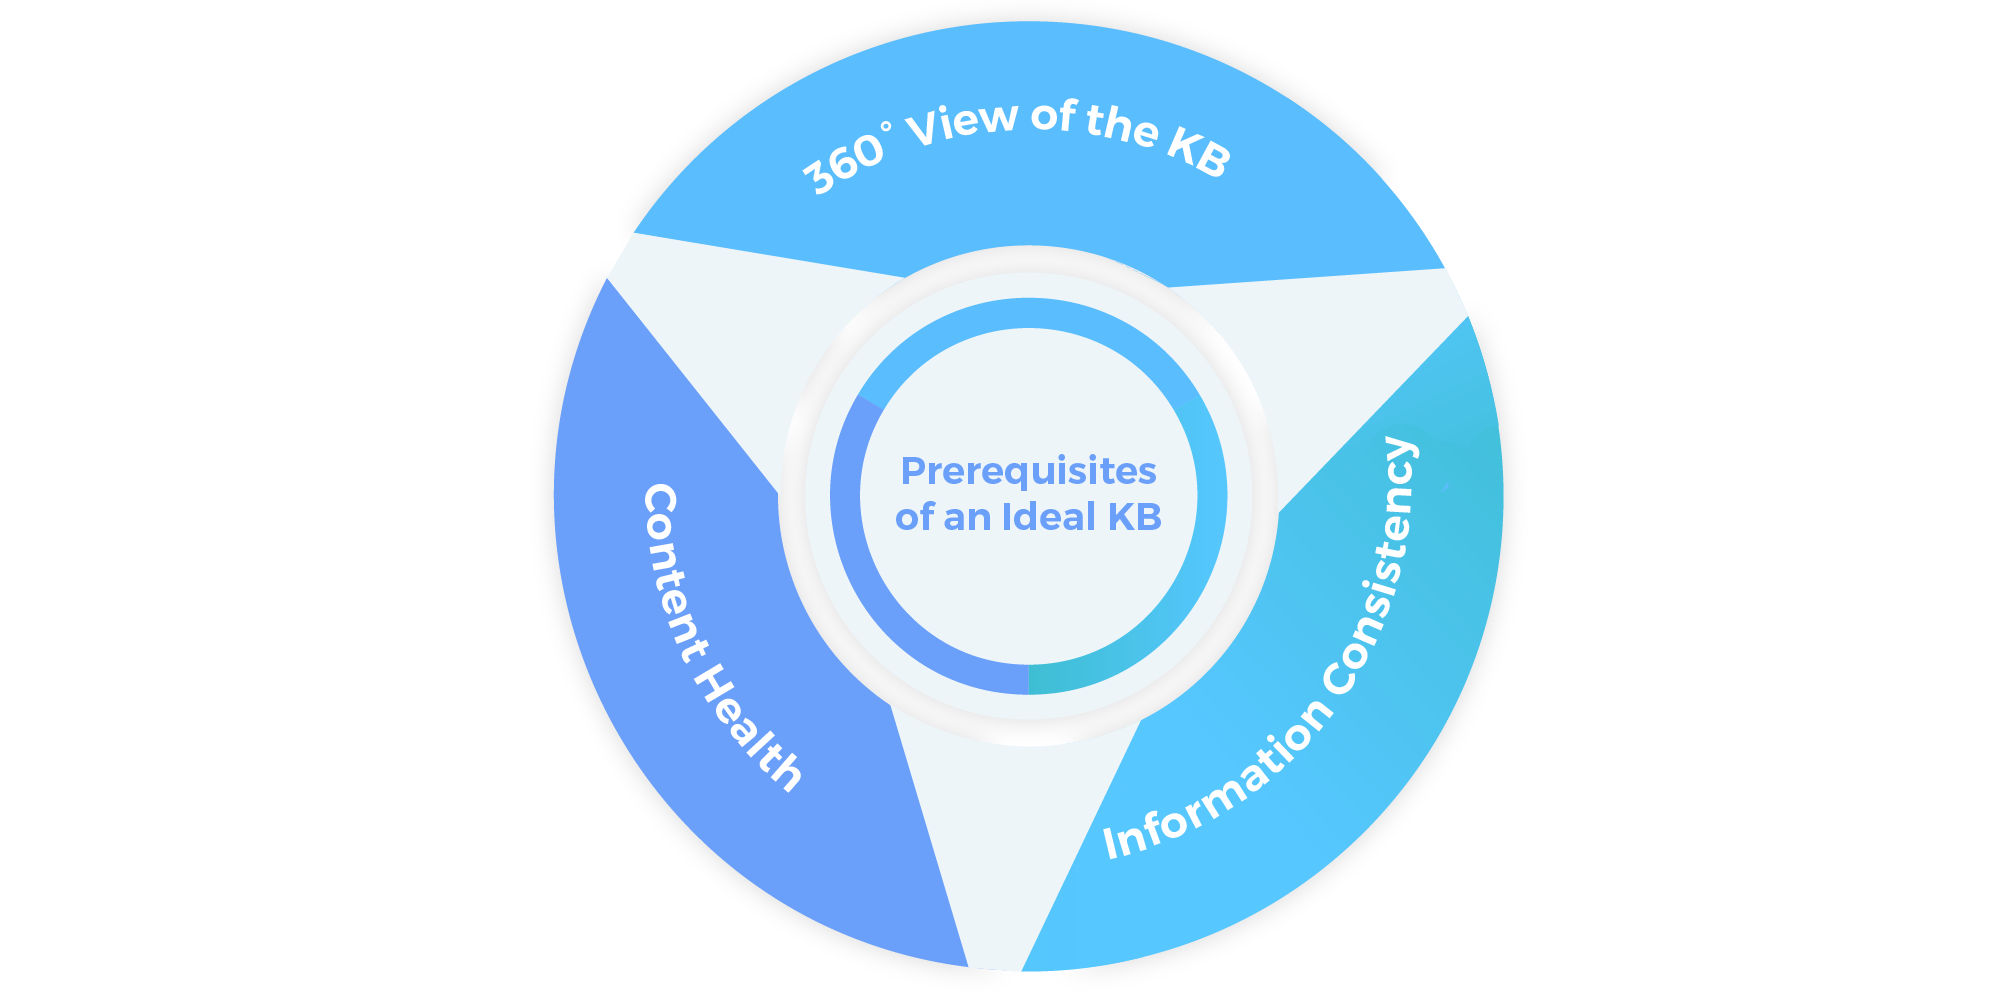 What are the Prerequisites of a Good Knowledge Base